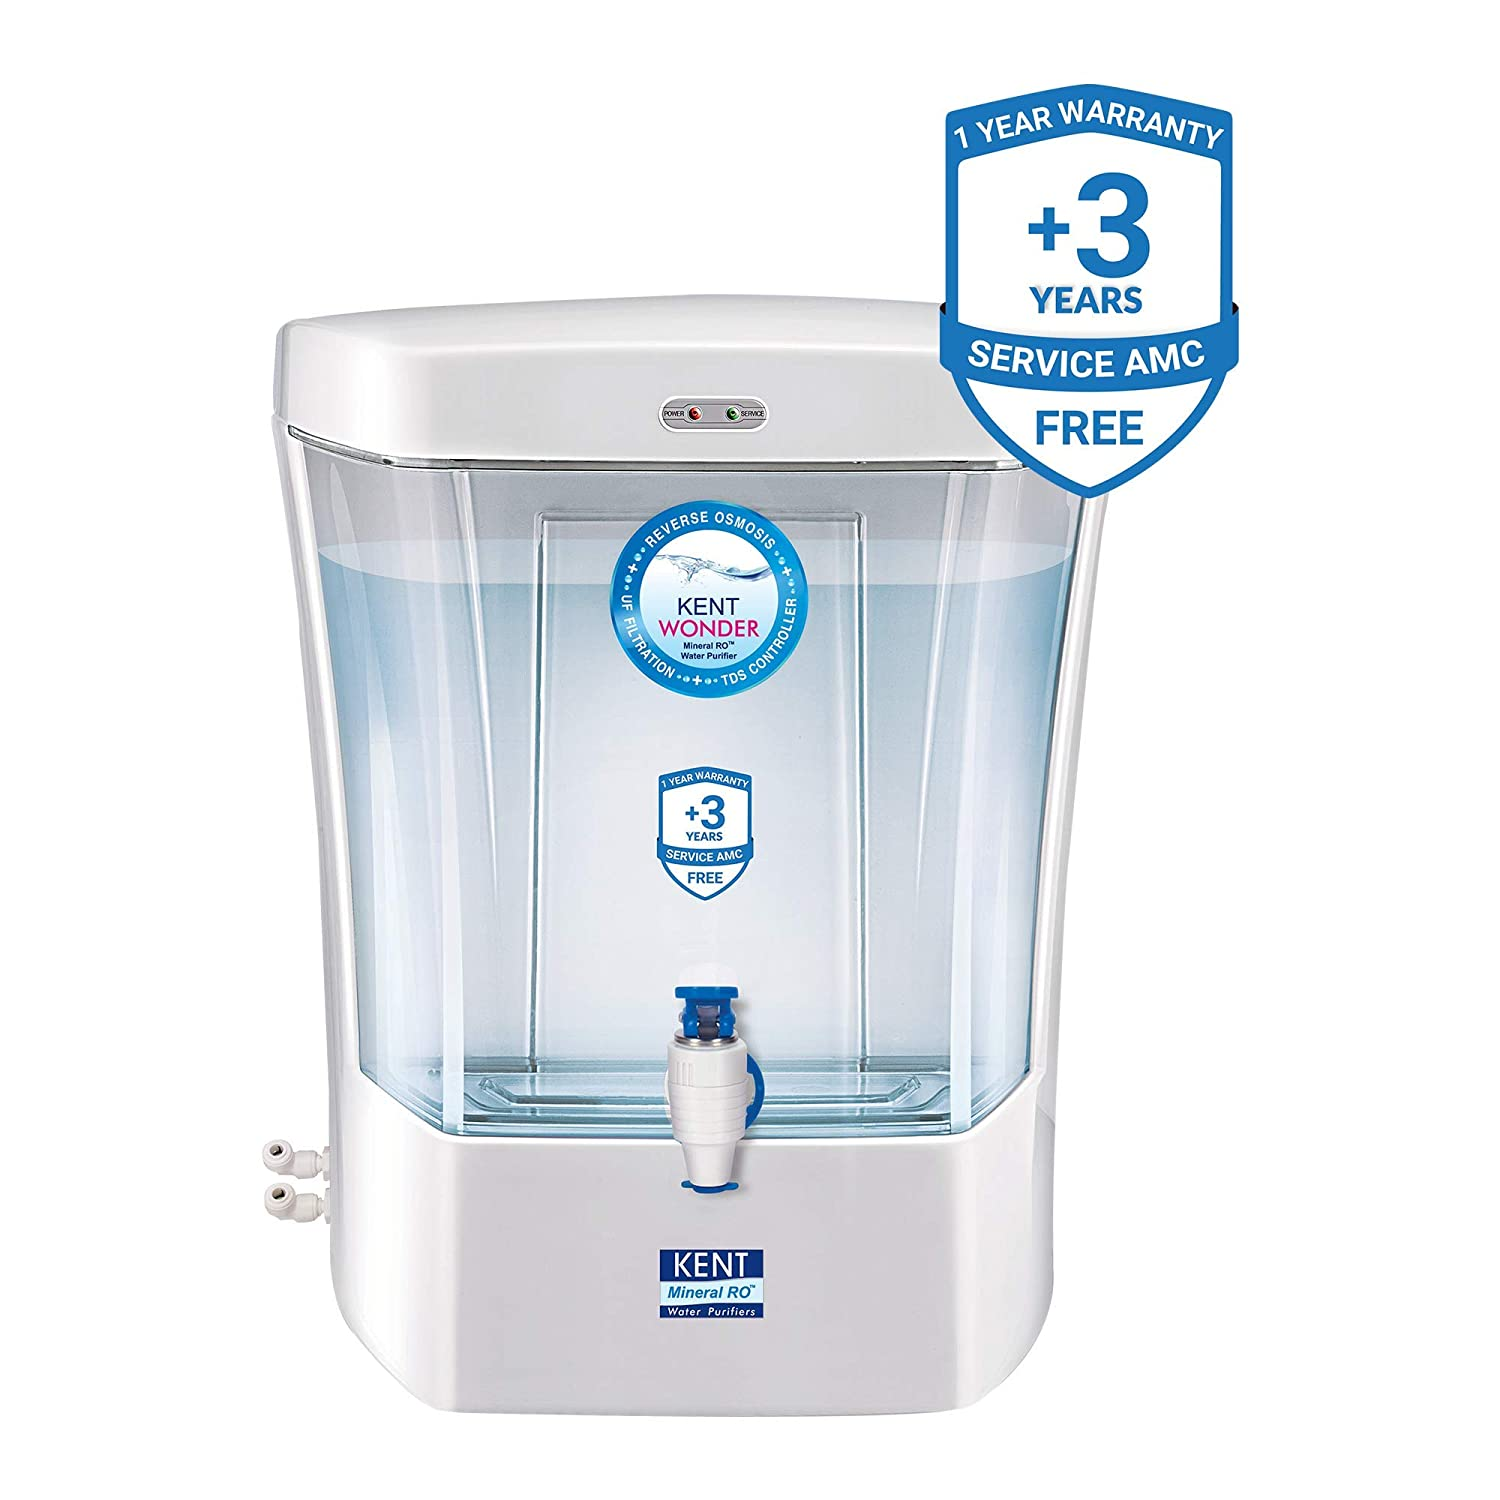 86b6d2999 KENT Wonder 7-Litres Wall-mounted   Counter-top RO Water Purifier ...